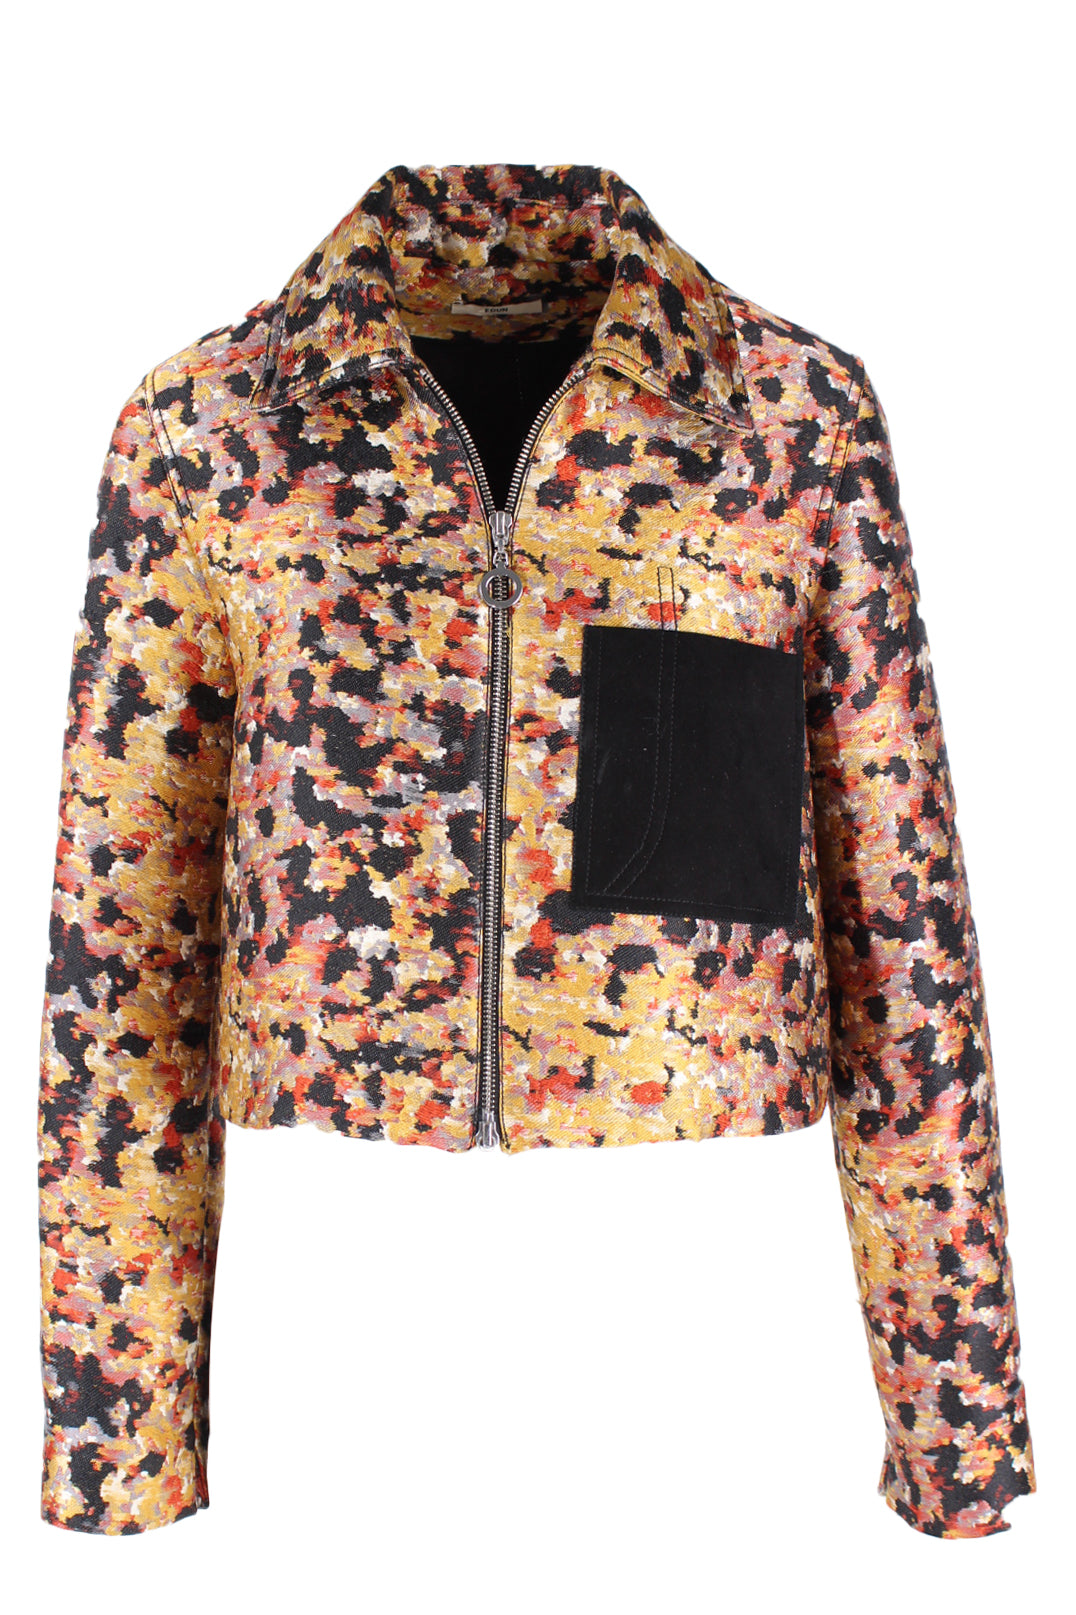 description: edun multicolor jacket. featuring yellow, red, black, and grey embroidery and a black suede pocket detail.